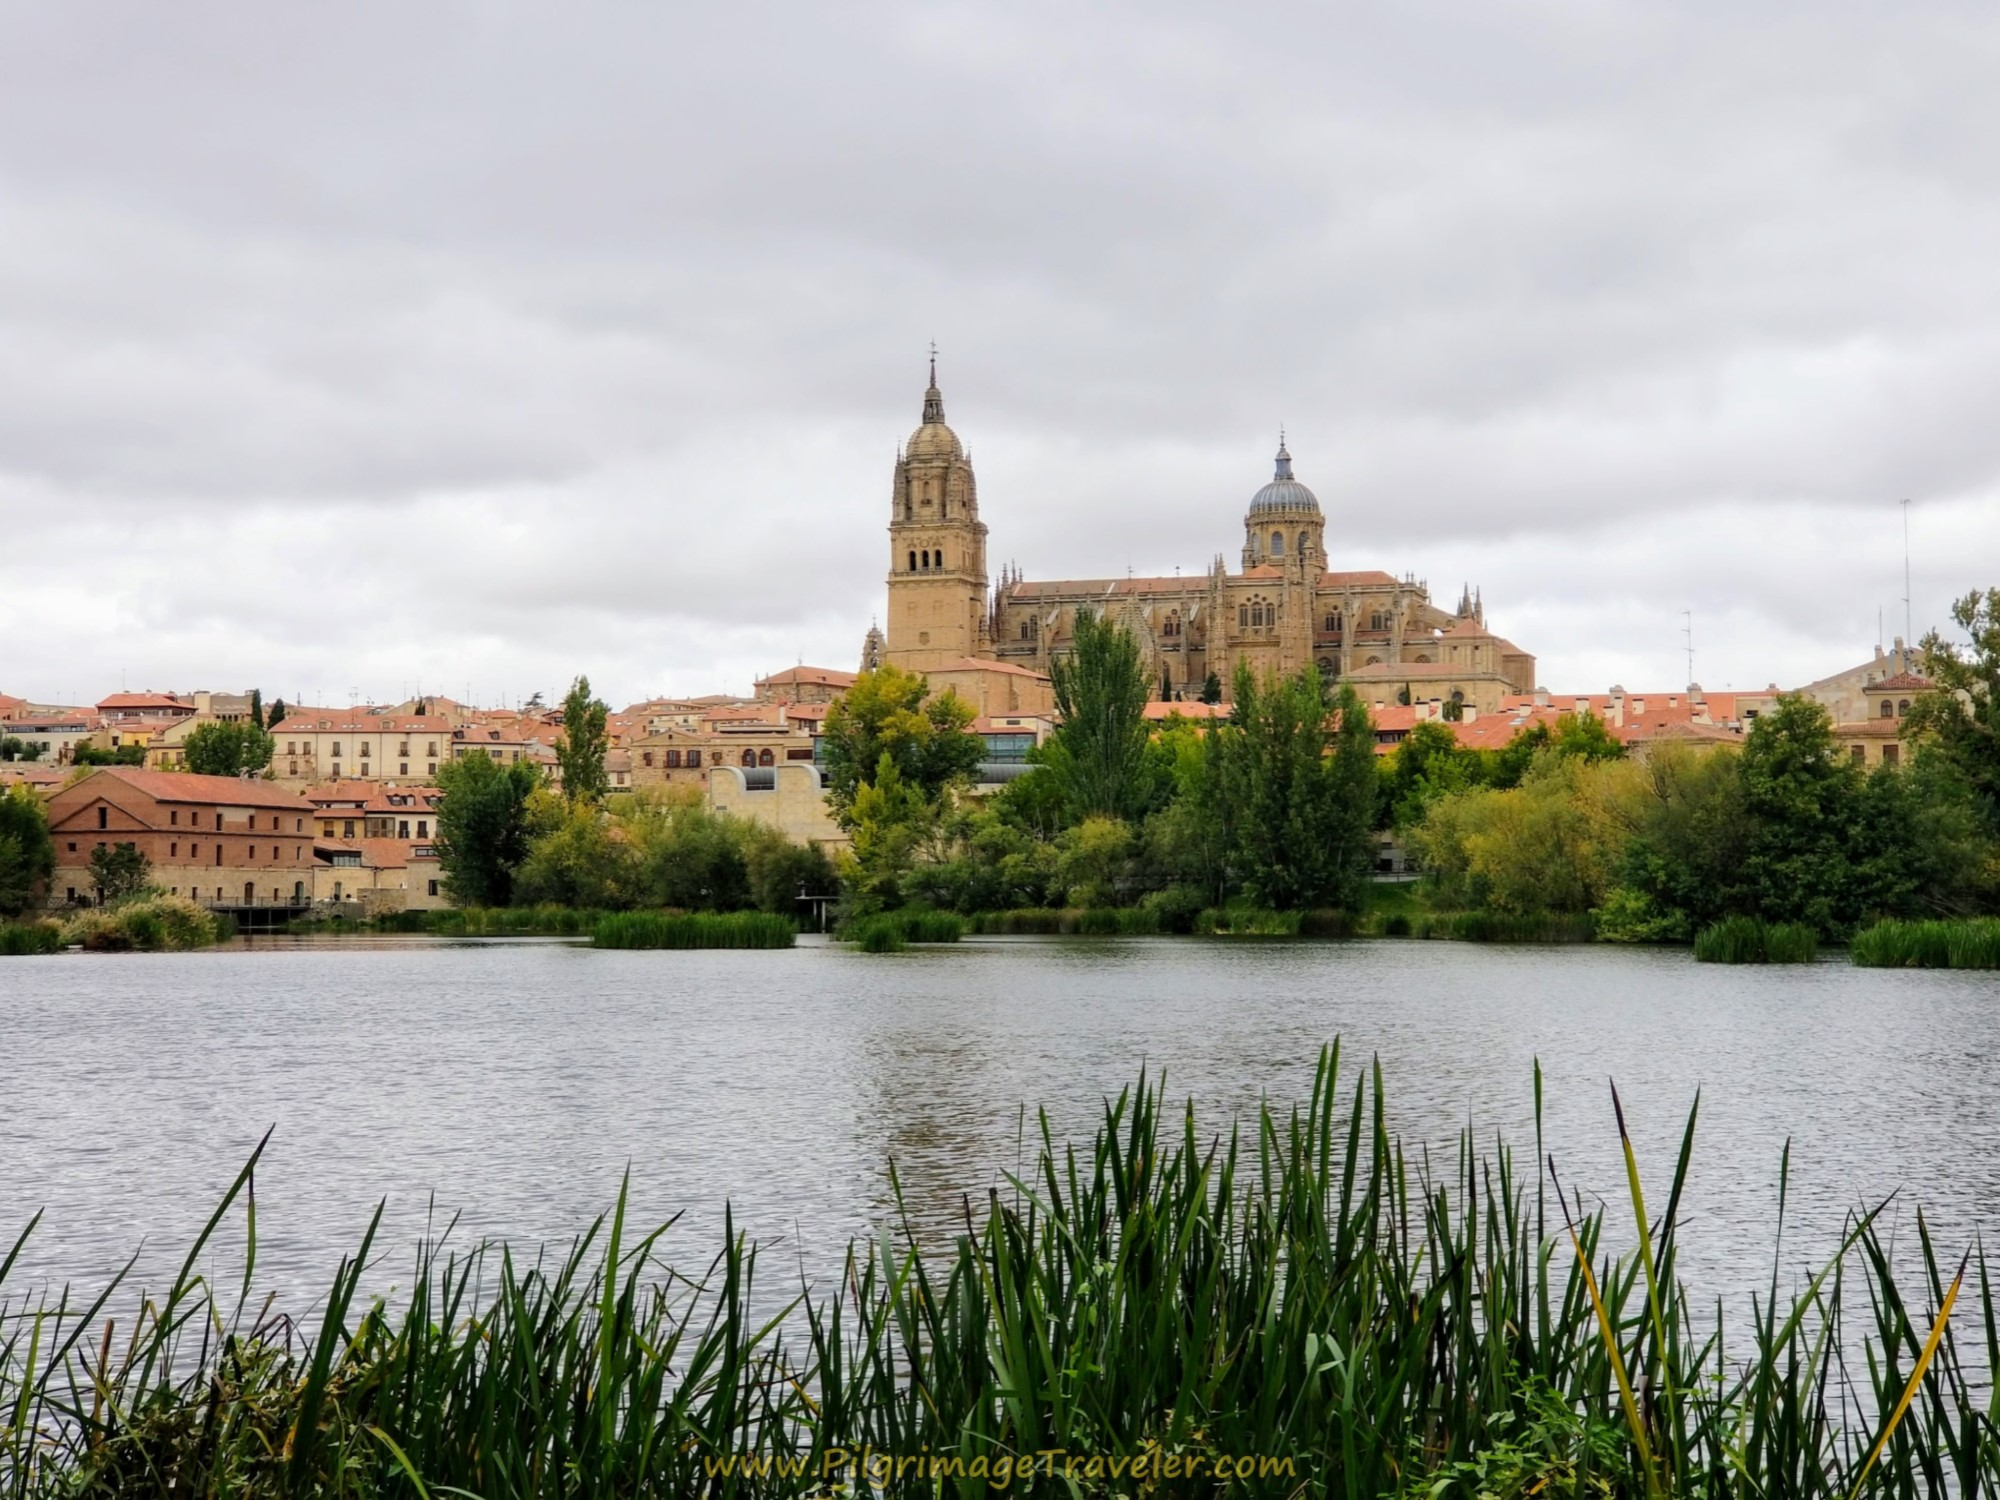 Cathedral of Salamanca from the Río Tormes